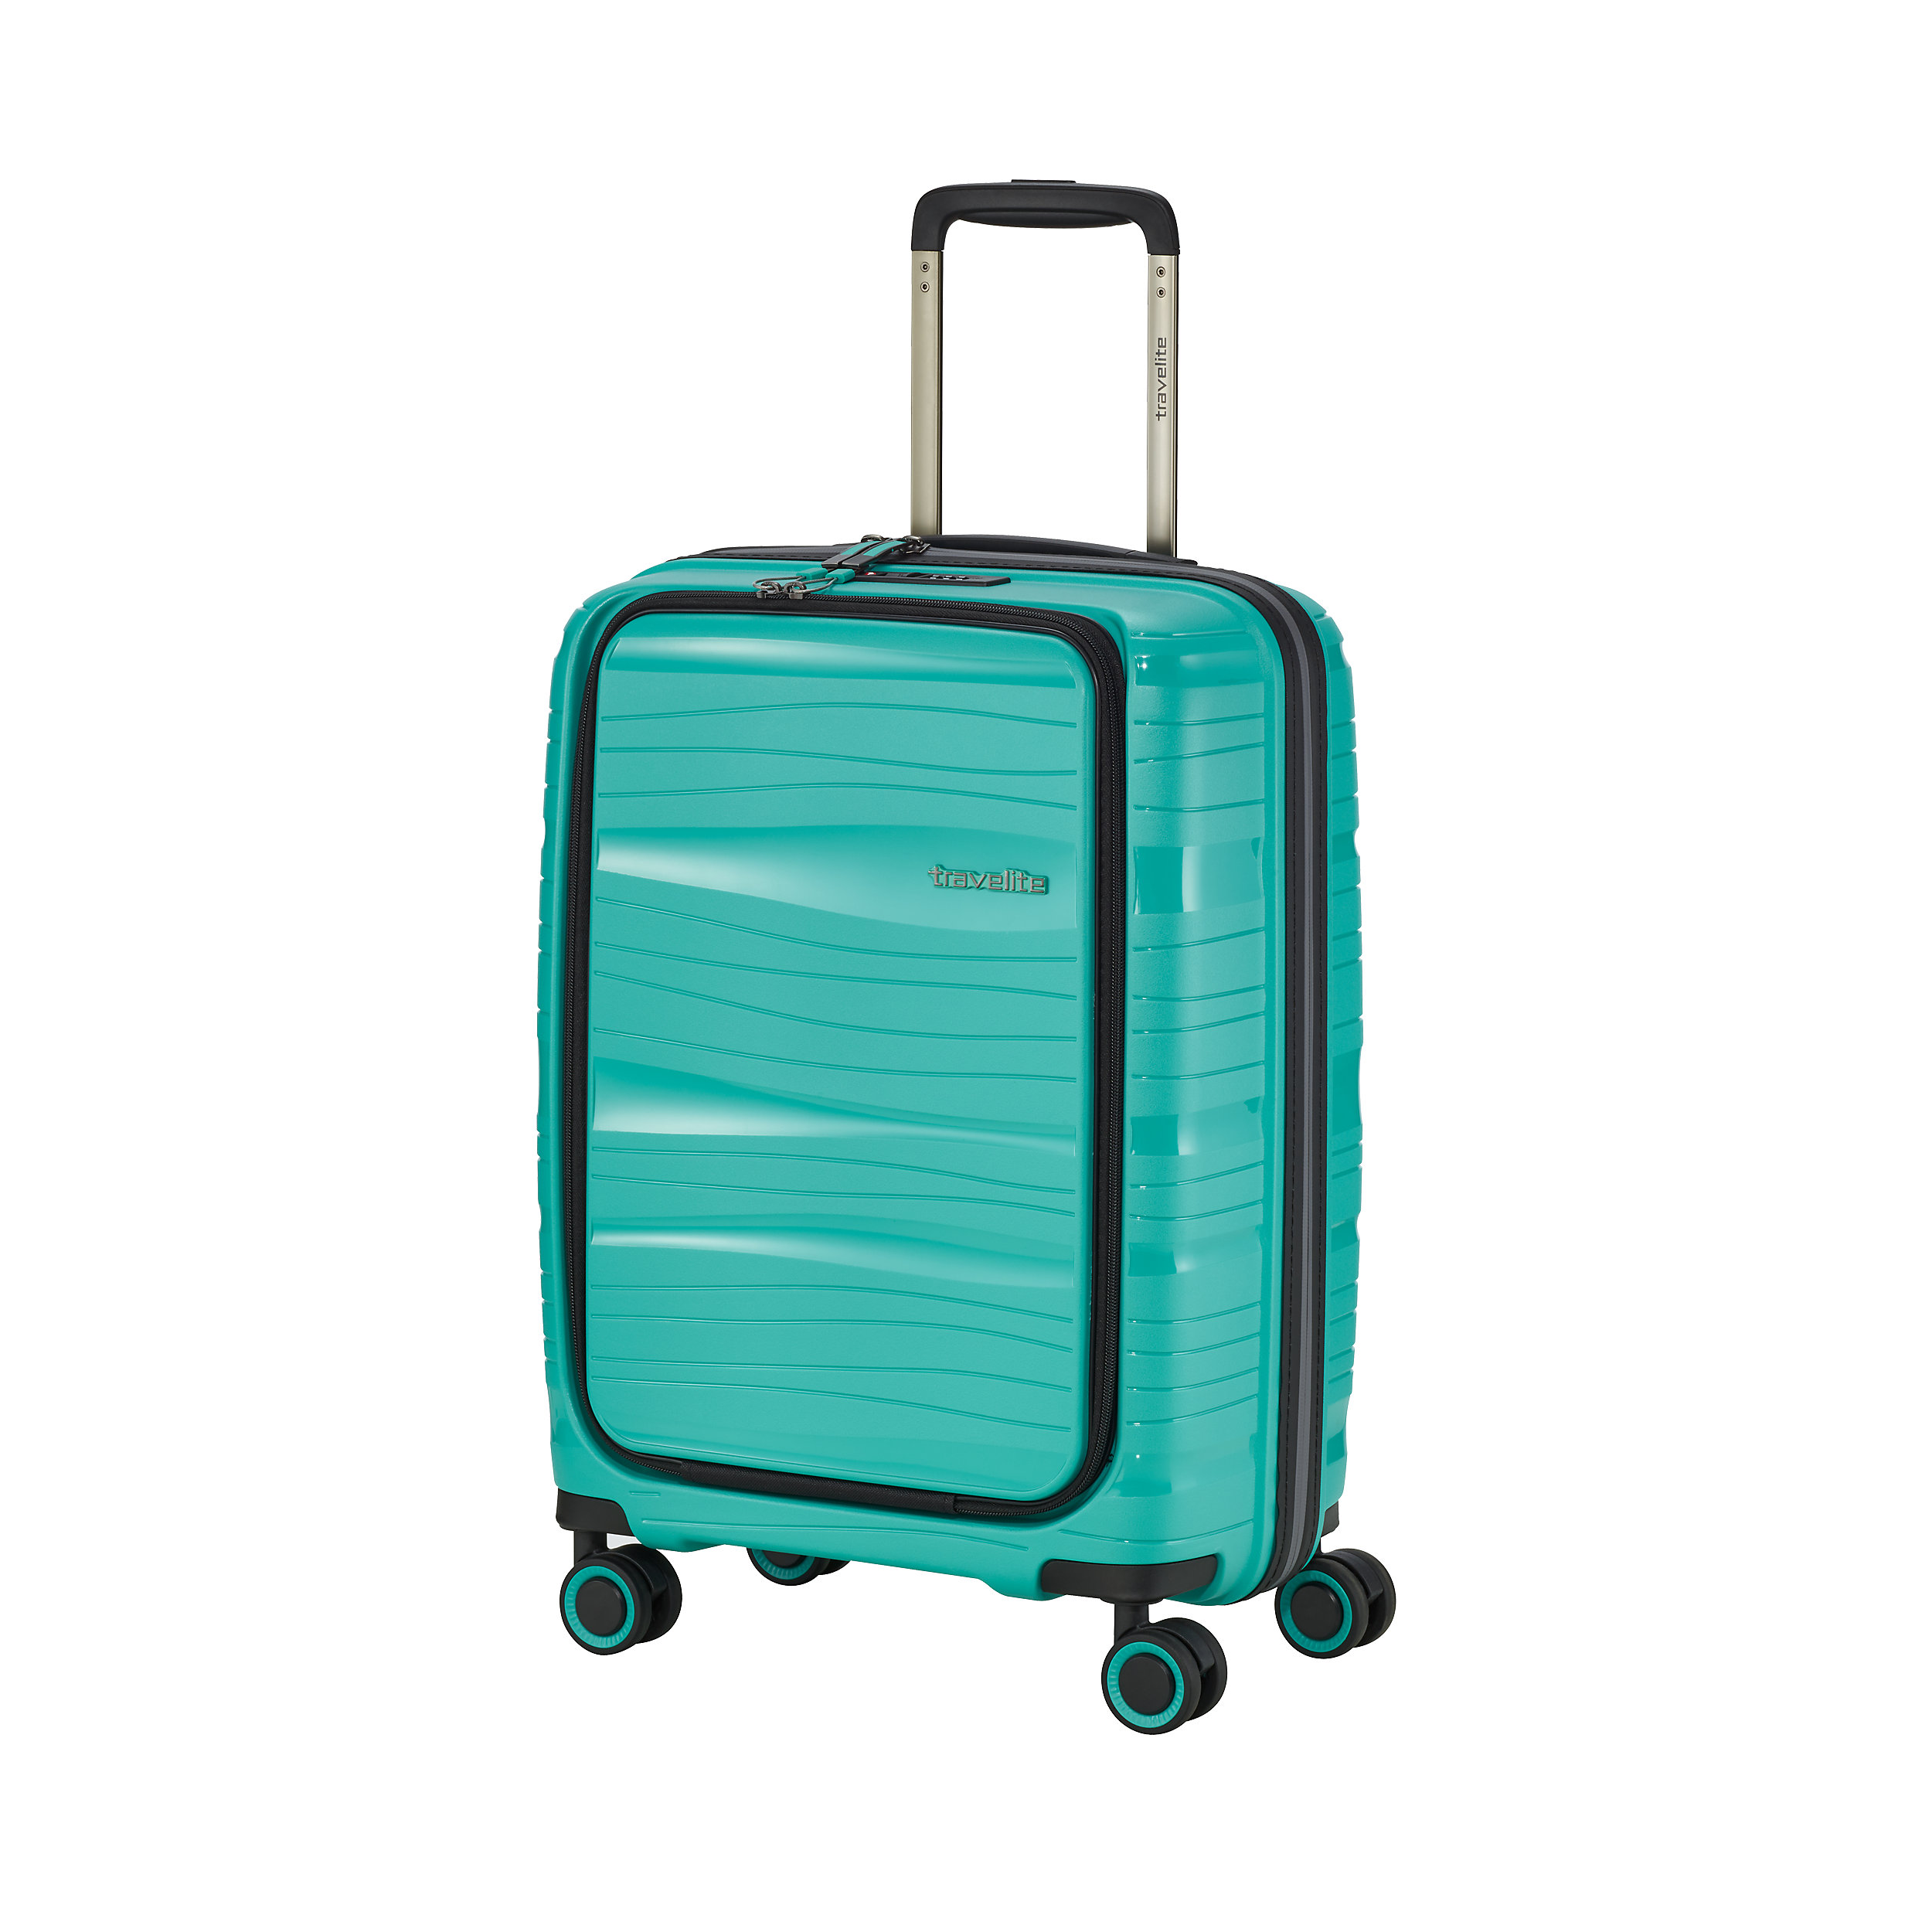 Handgepäcktrolley mit 4 Rollen S 55 cm Business Motion 43 Liter